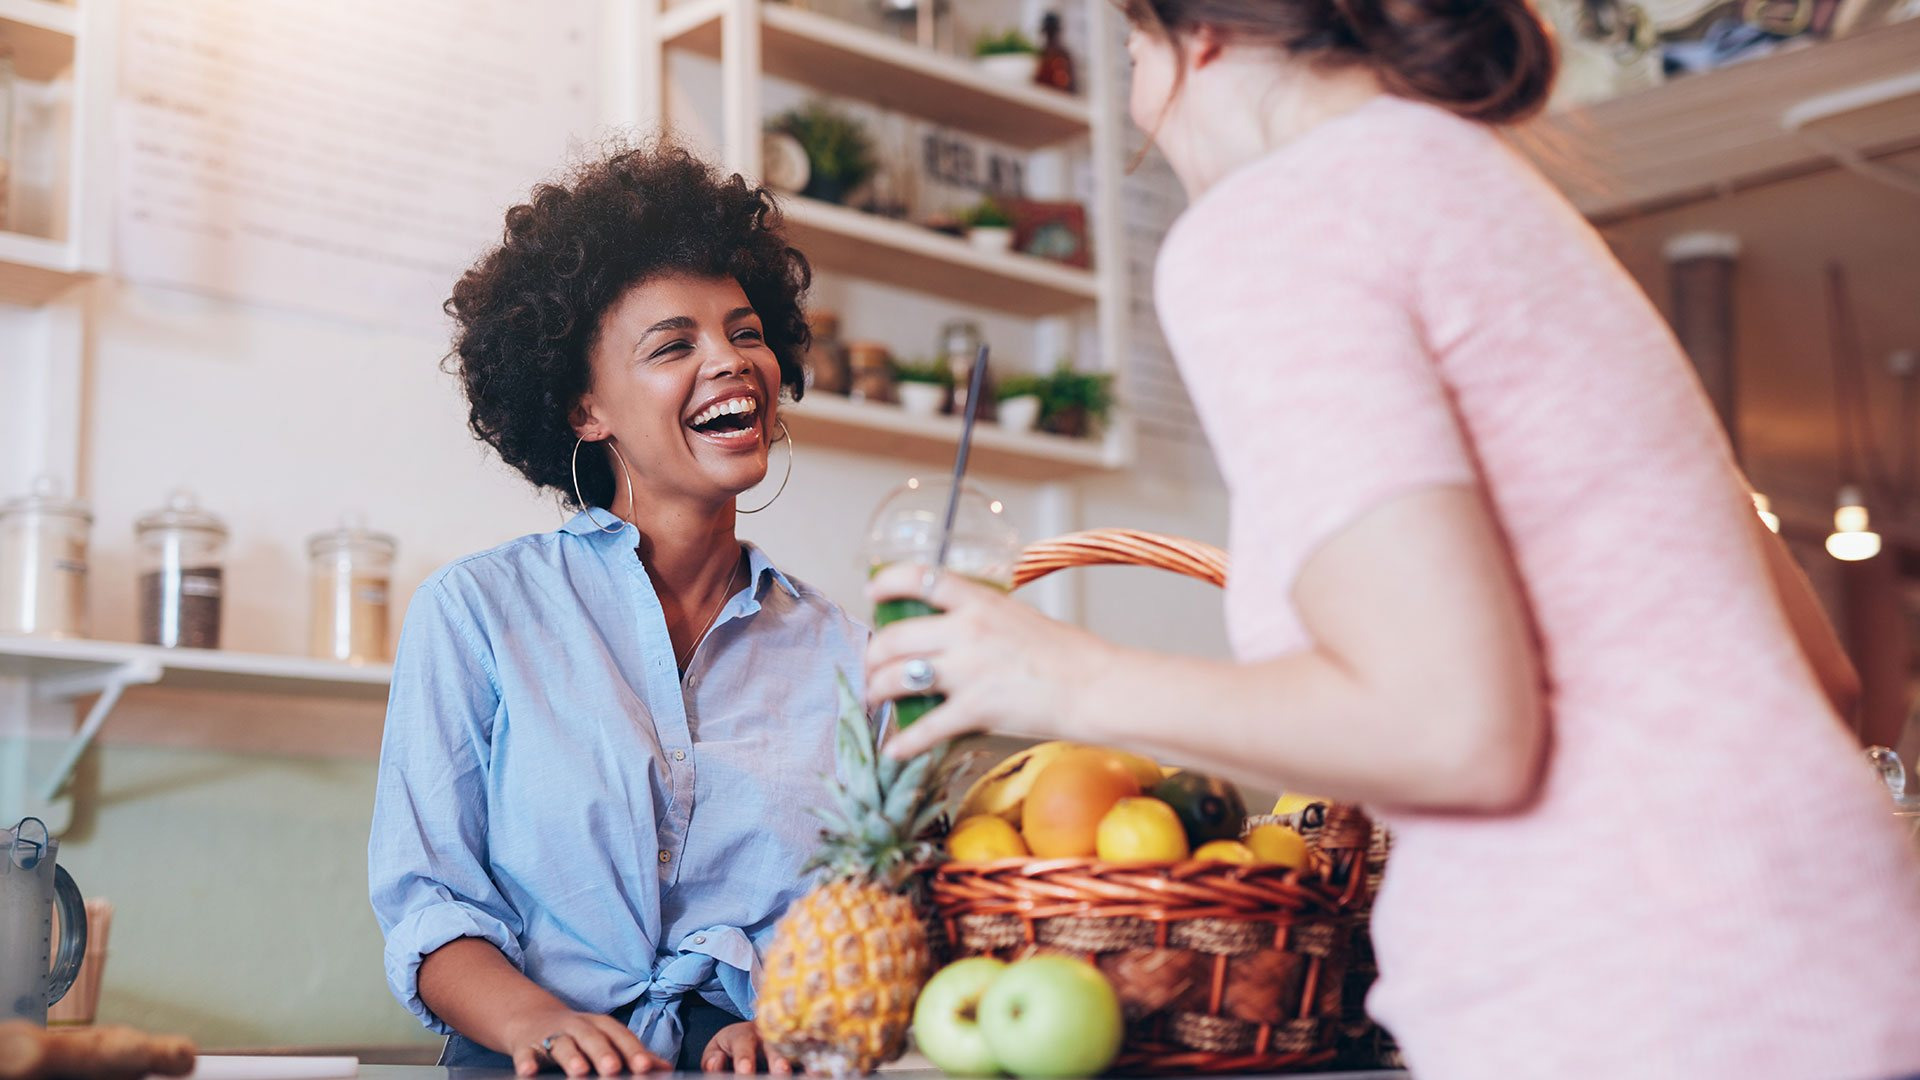 Female store owner smiling with client at checkout counter